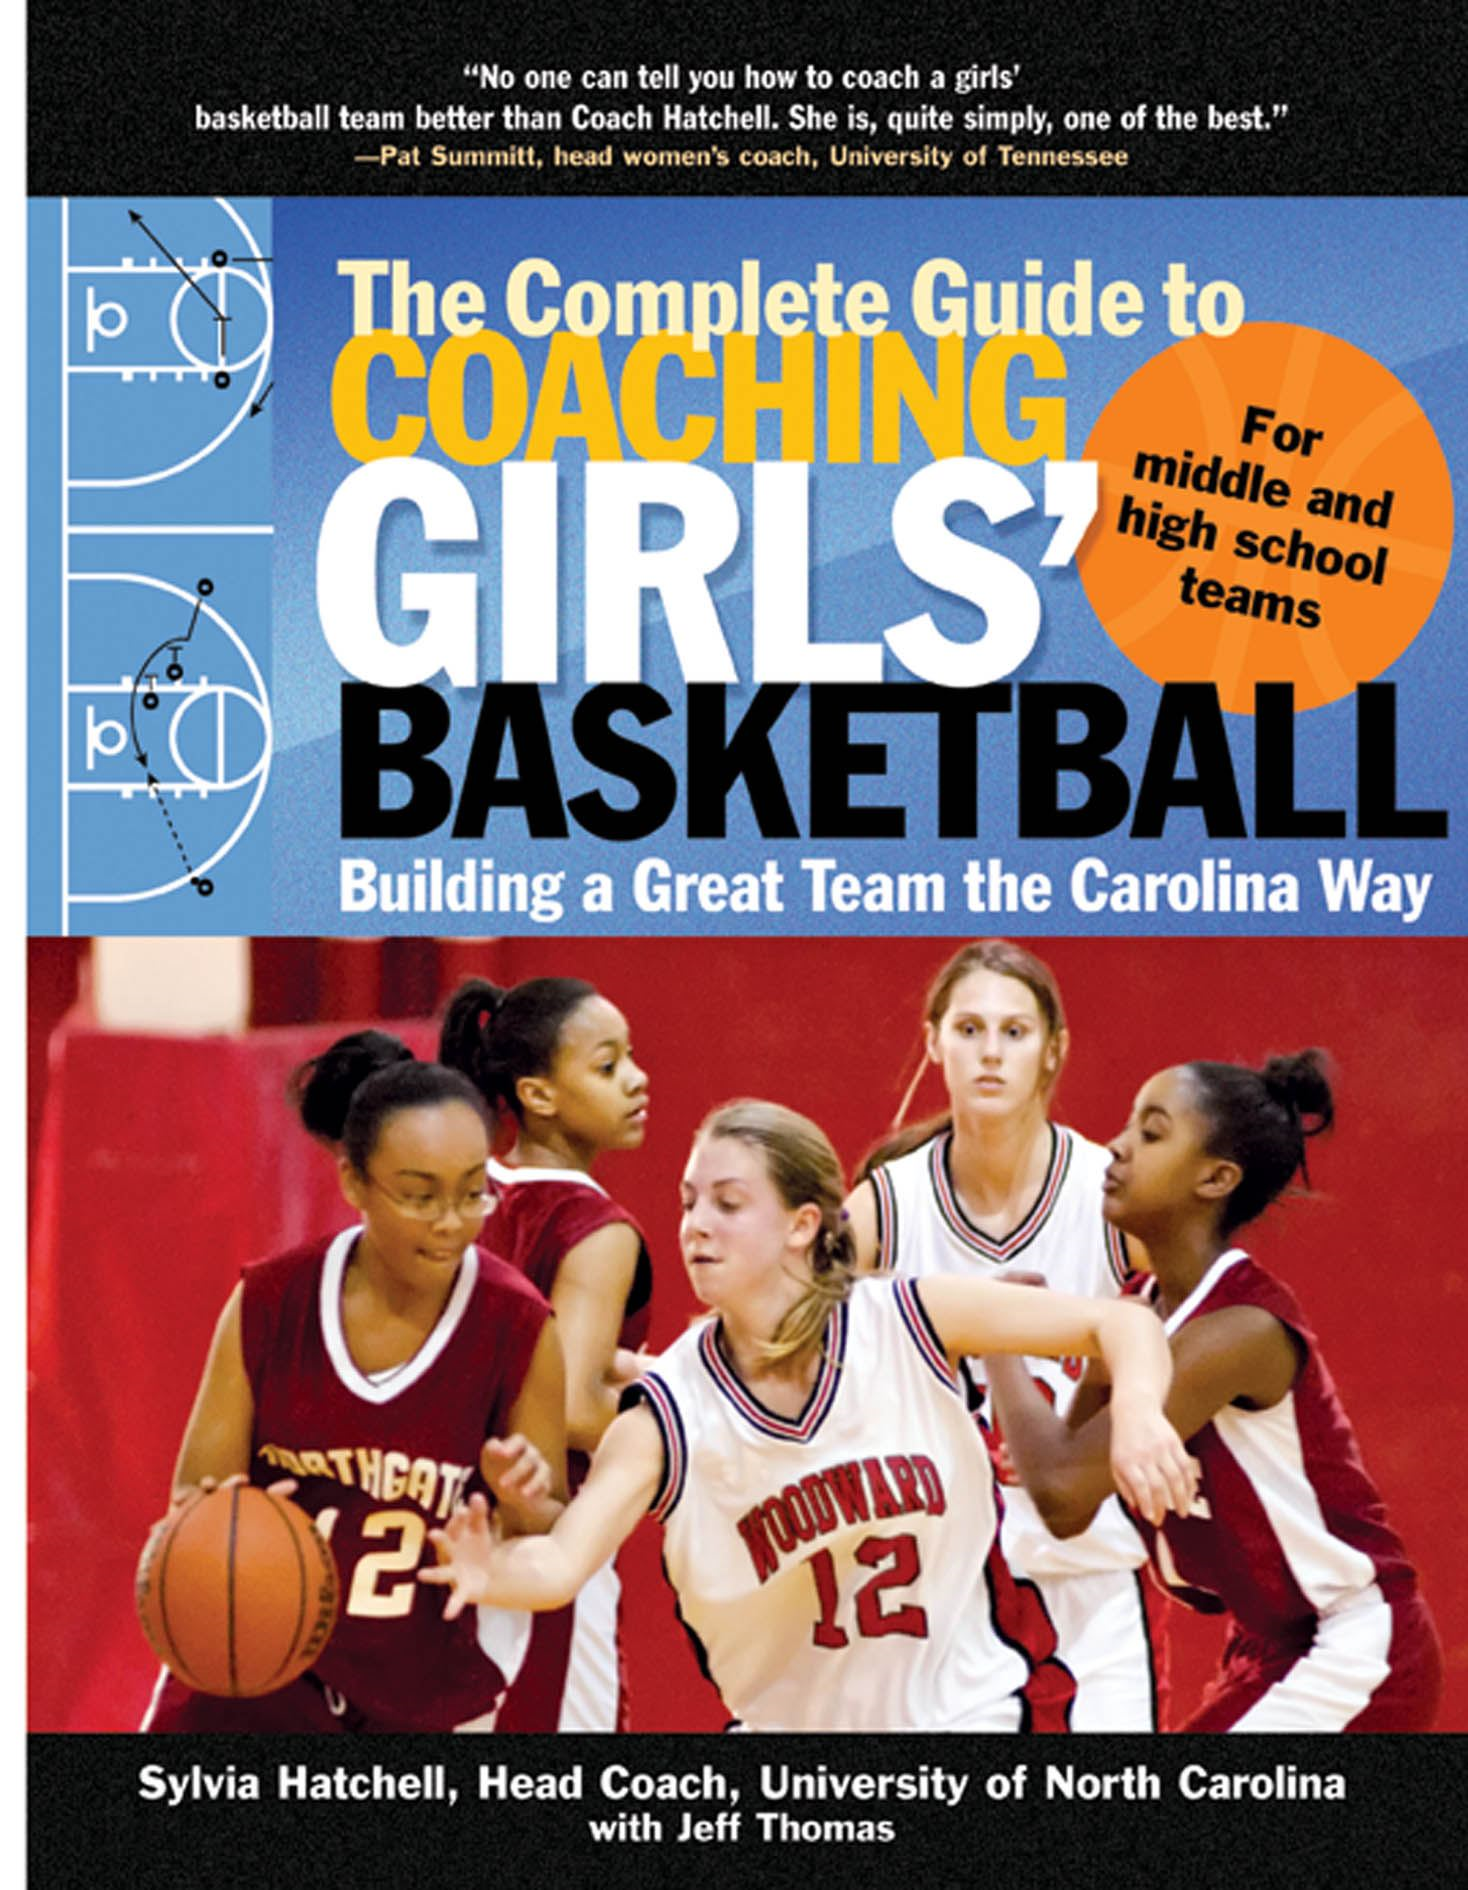 Complete Guide to Coaching Girls Basketball (EBOOK)